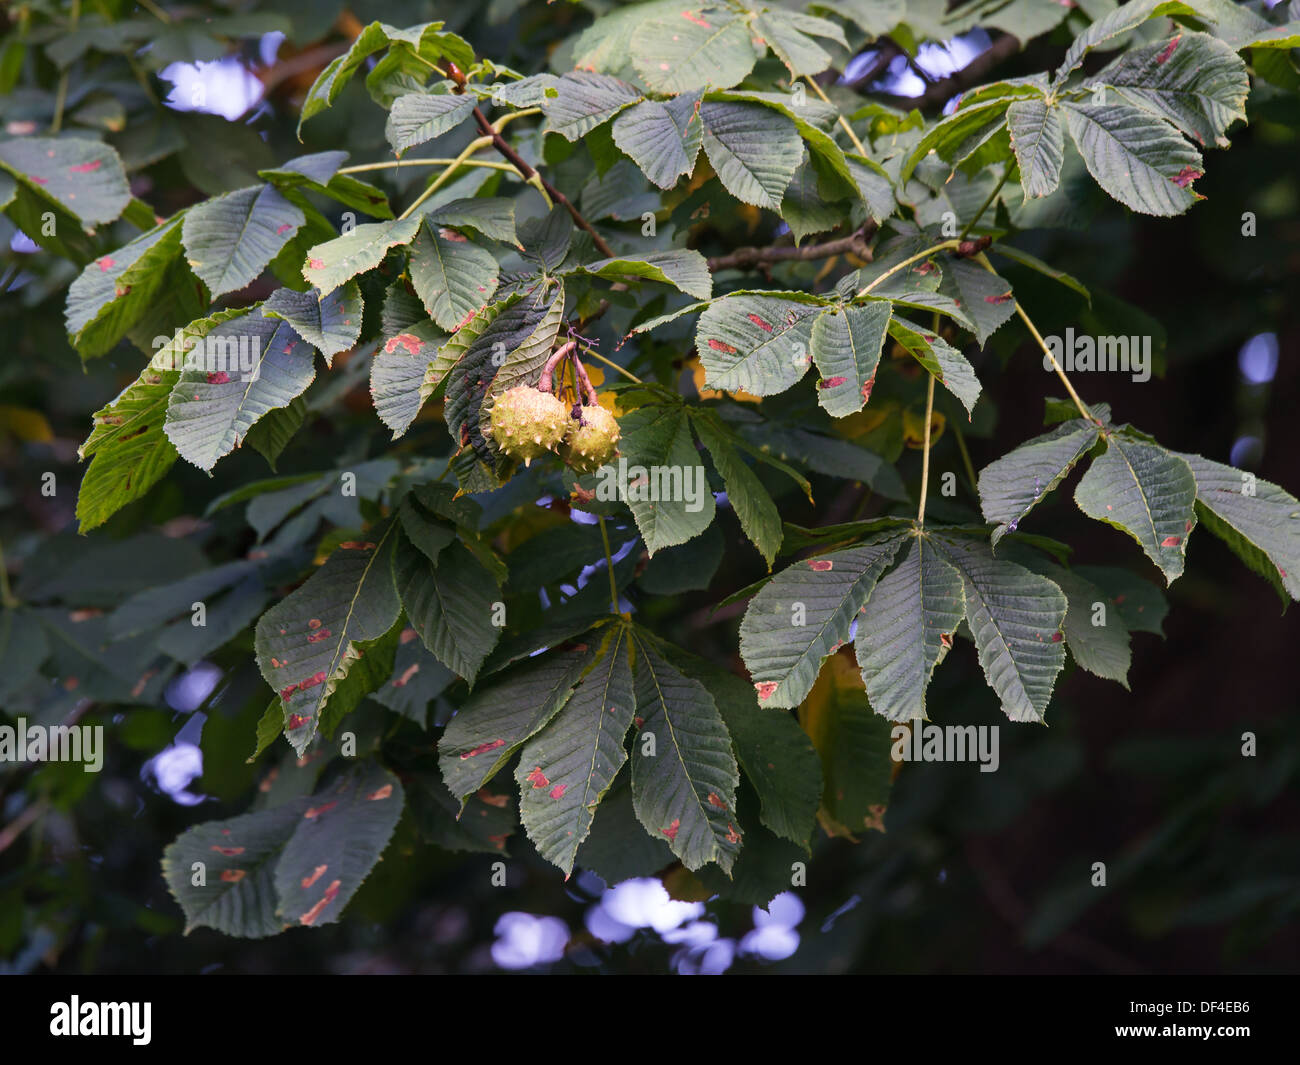 guignardia aesculi fungus blotches on horse chestnut tree leaves - Stock Image